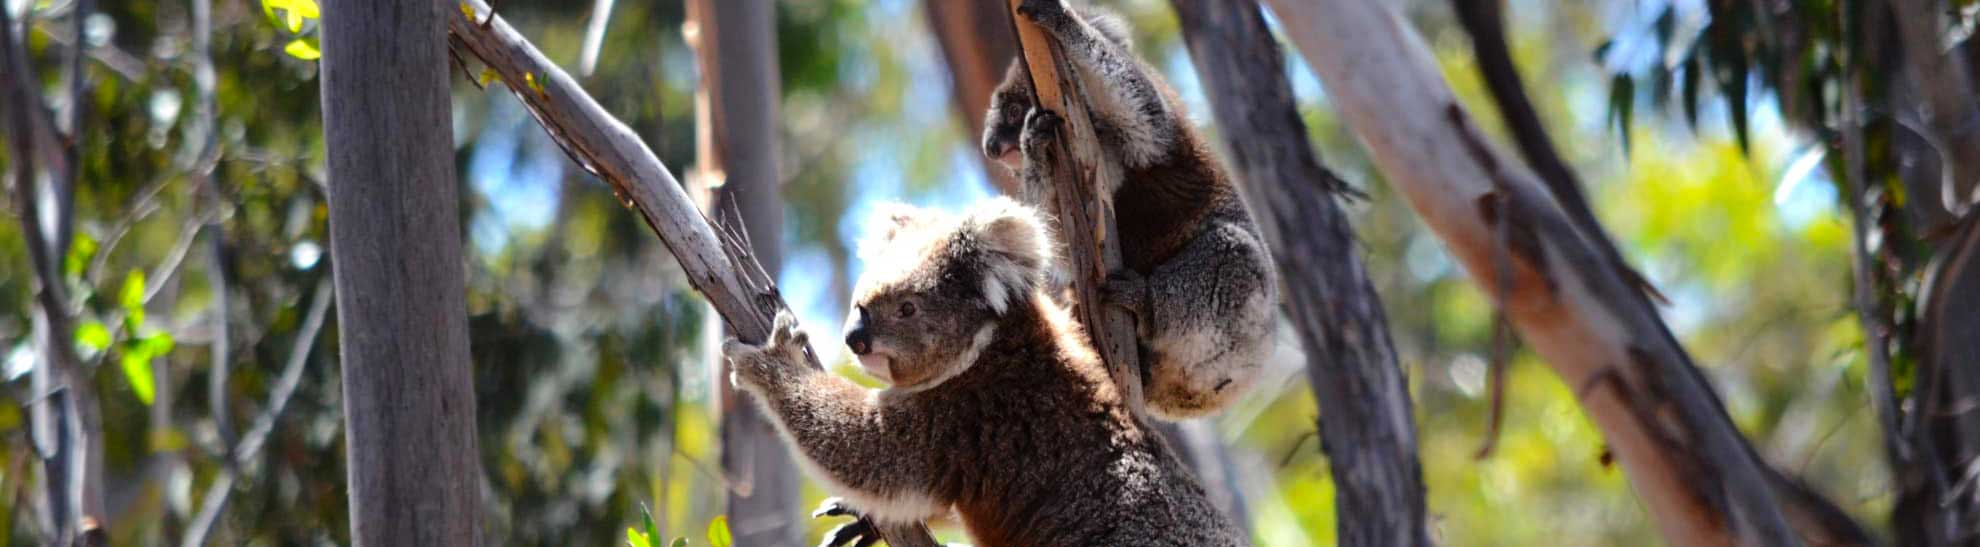 Donate for Koalas